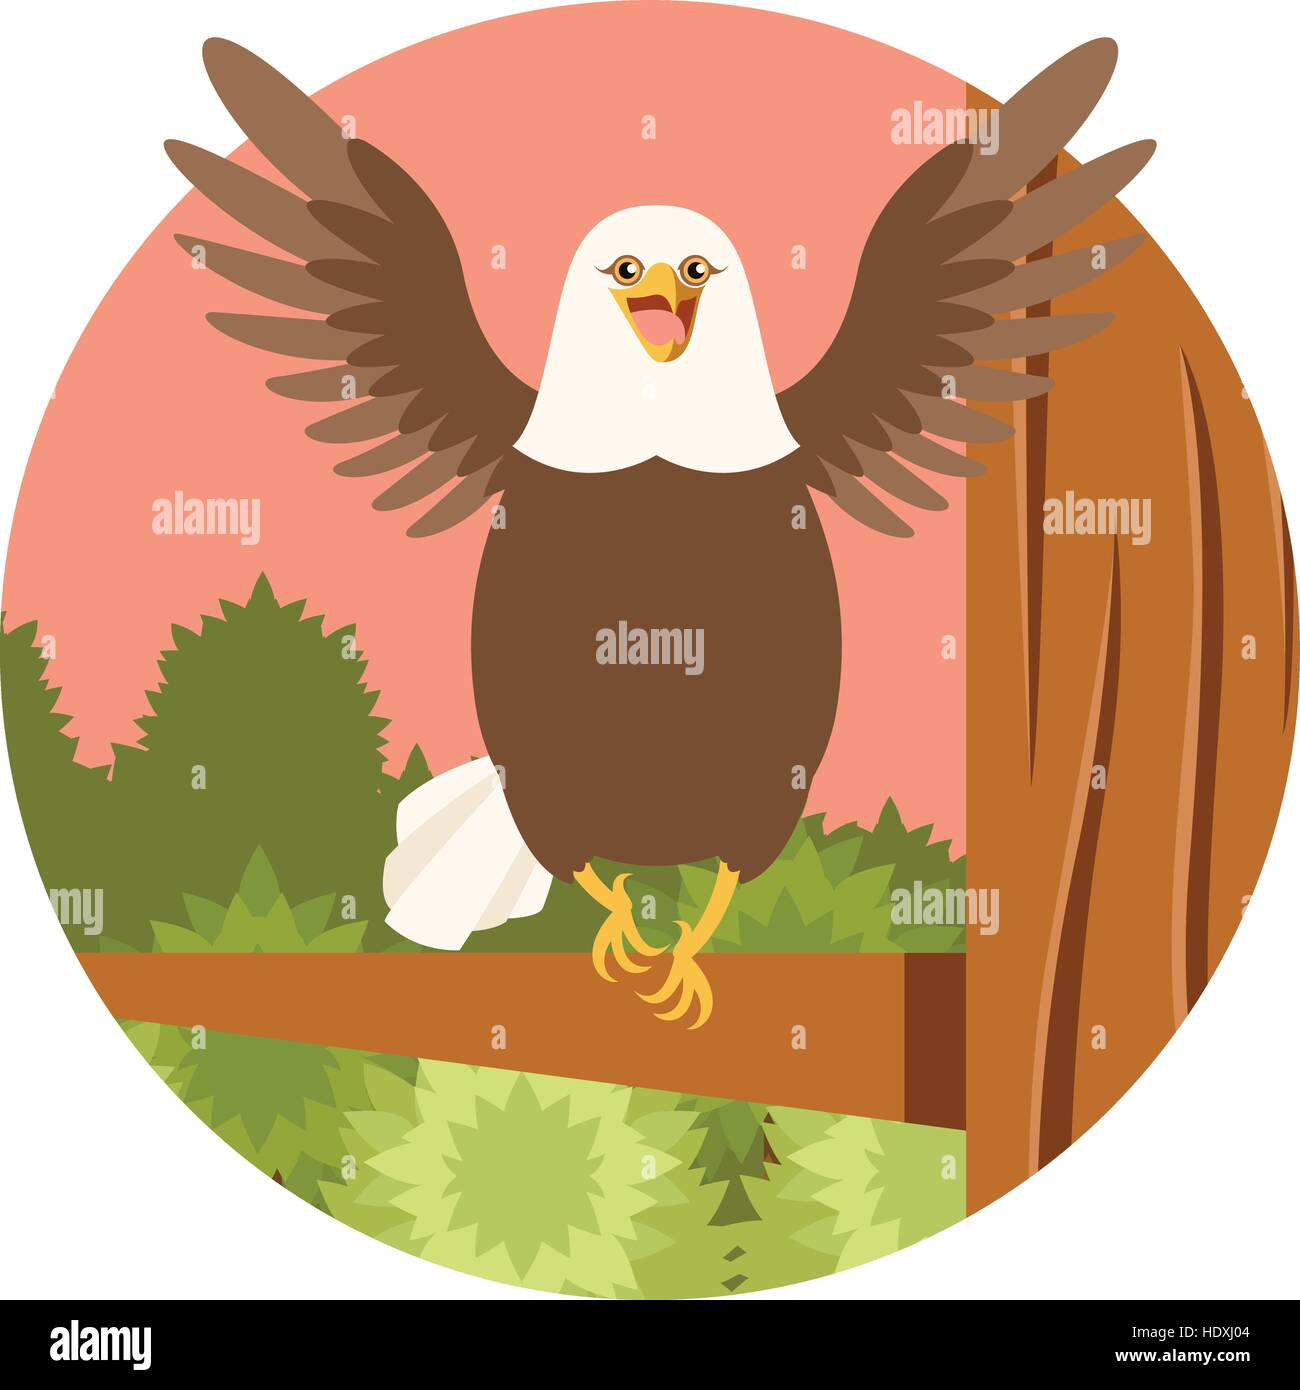 Dignity Vector Vectors Stock Photos Bald Eagle Diagram Golden Related Keywords Suggestions Image Of The Happy On Tree Flat Background